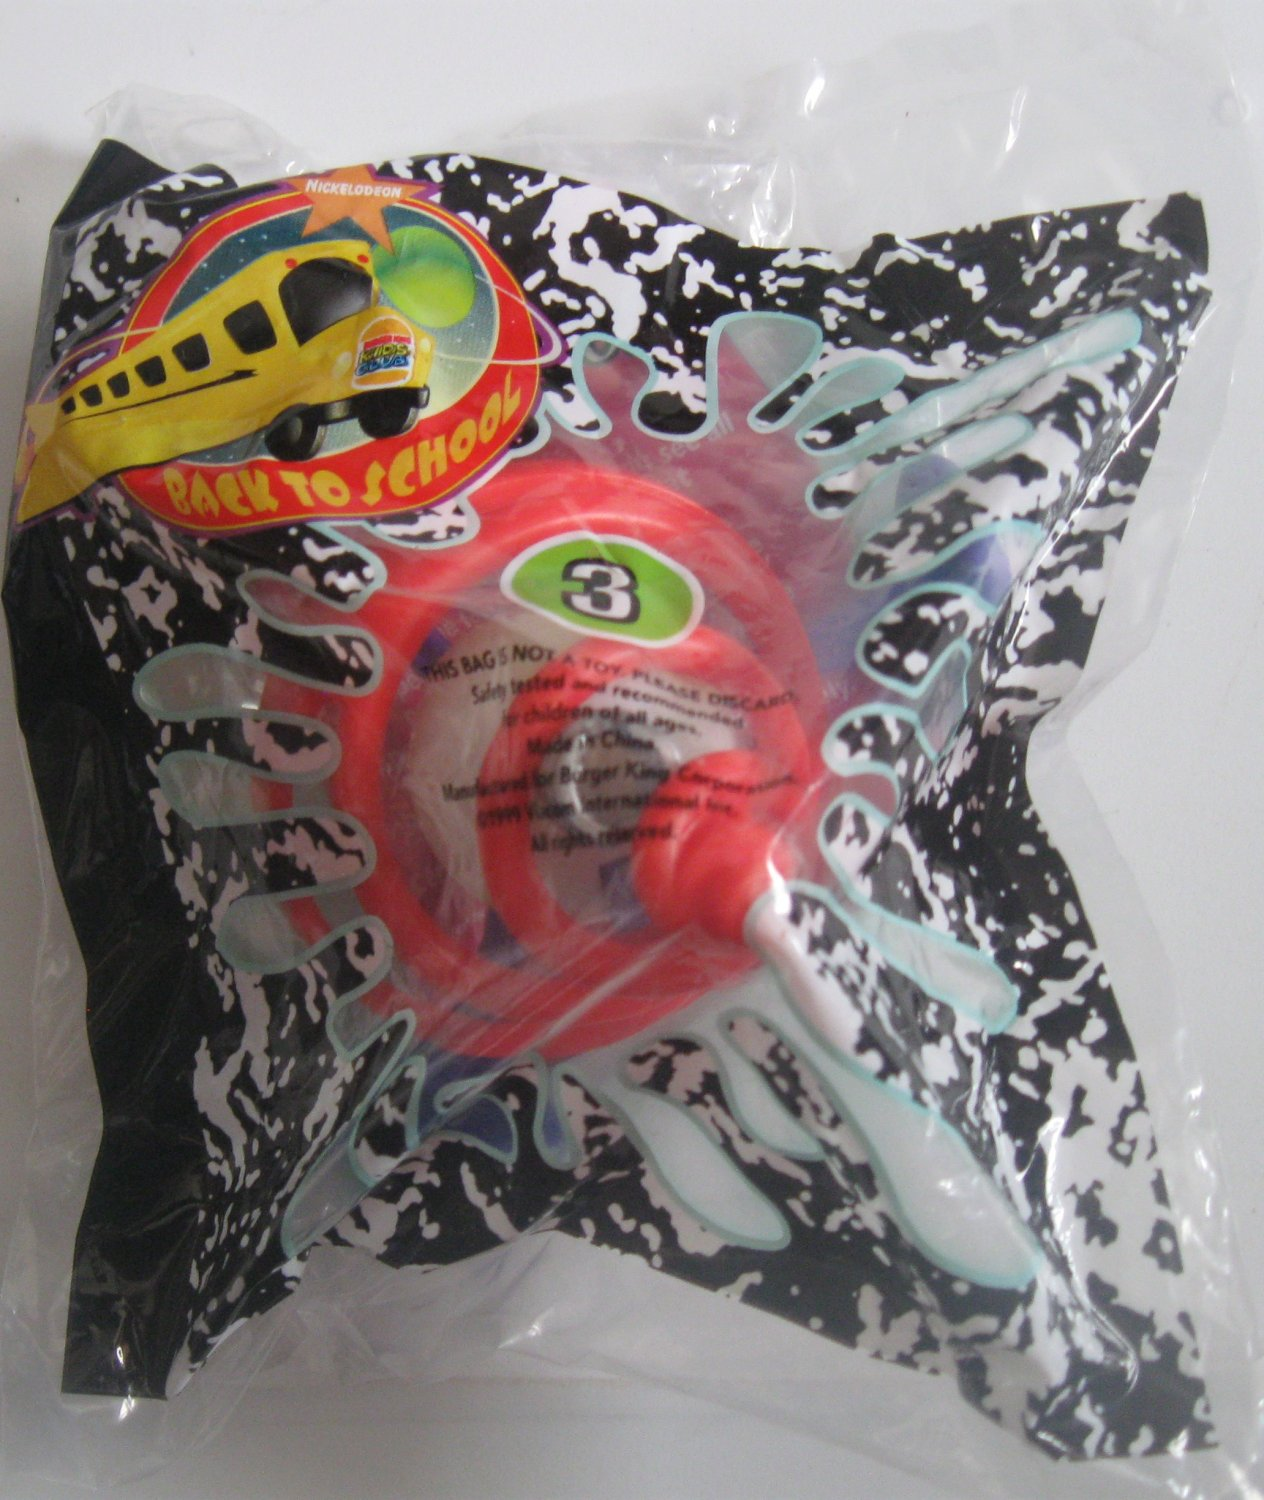 Burger King Kid's Meal Toy - Back to School #3 1999